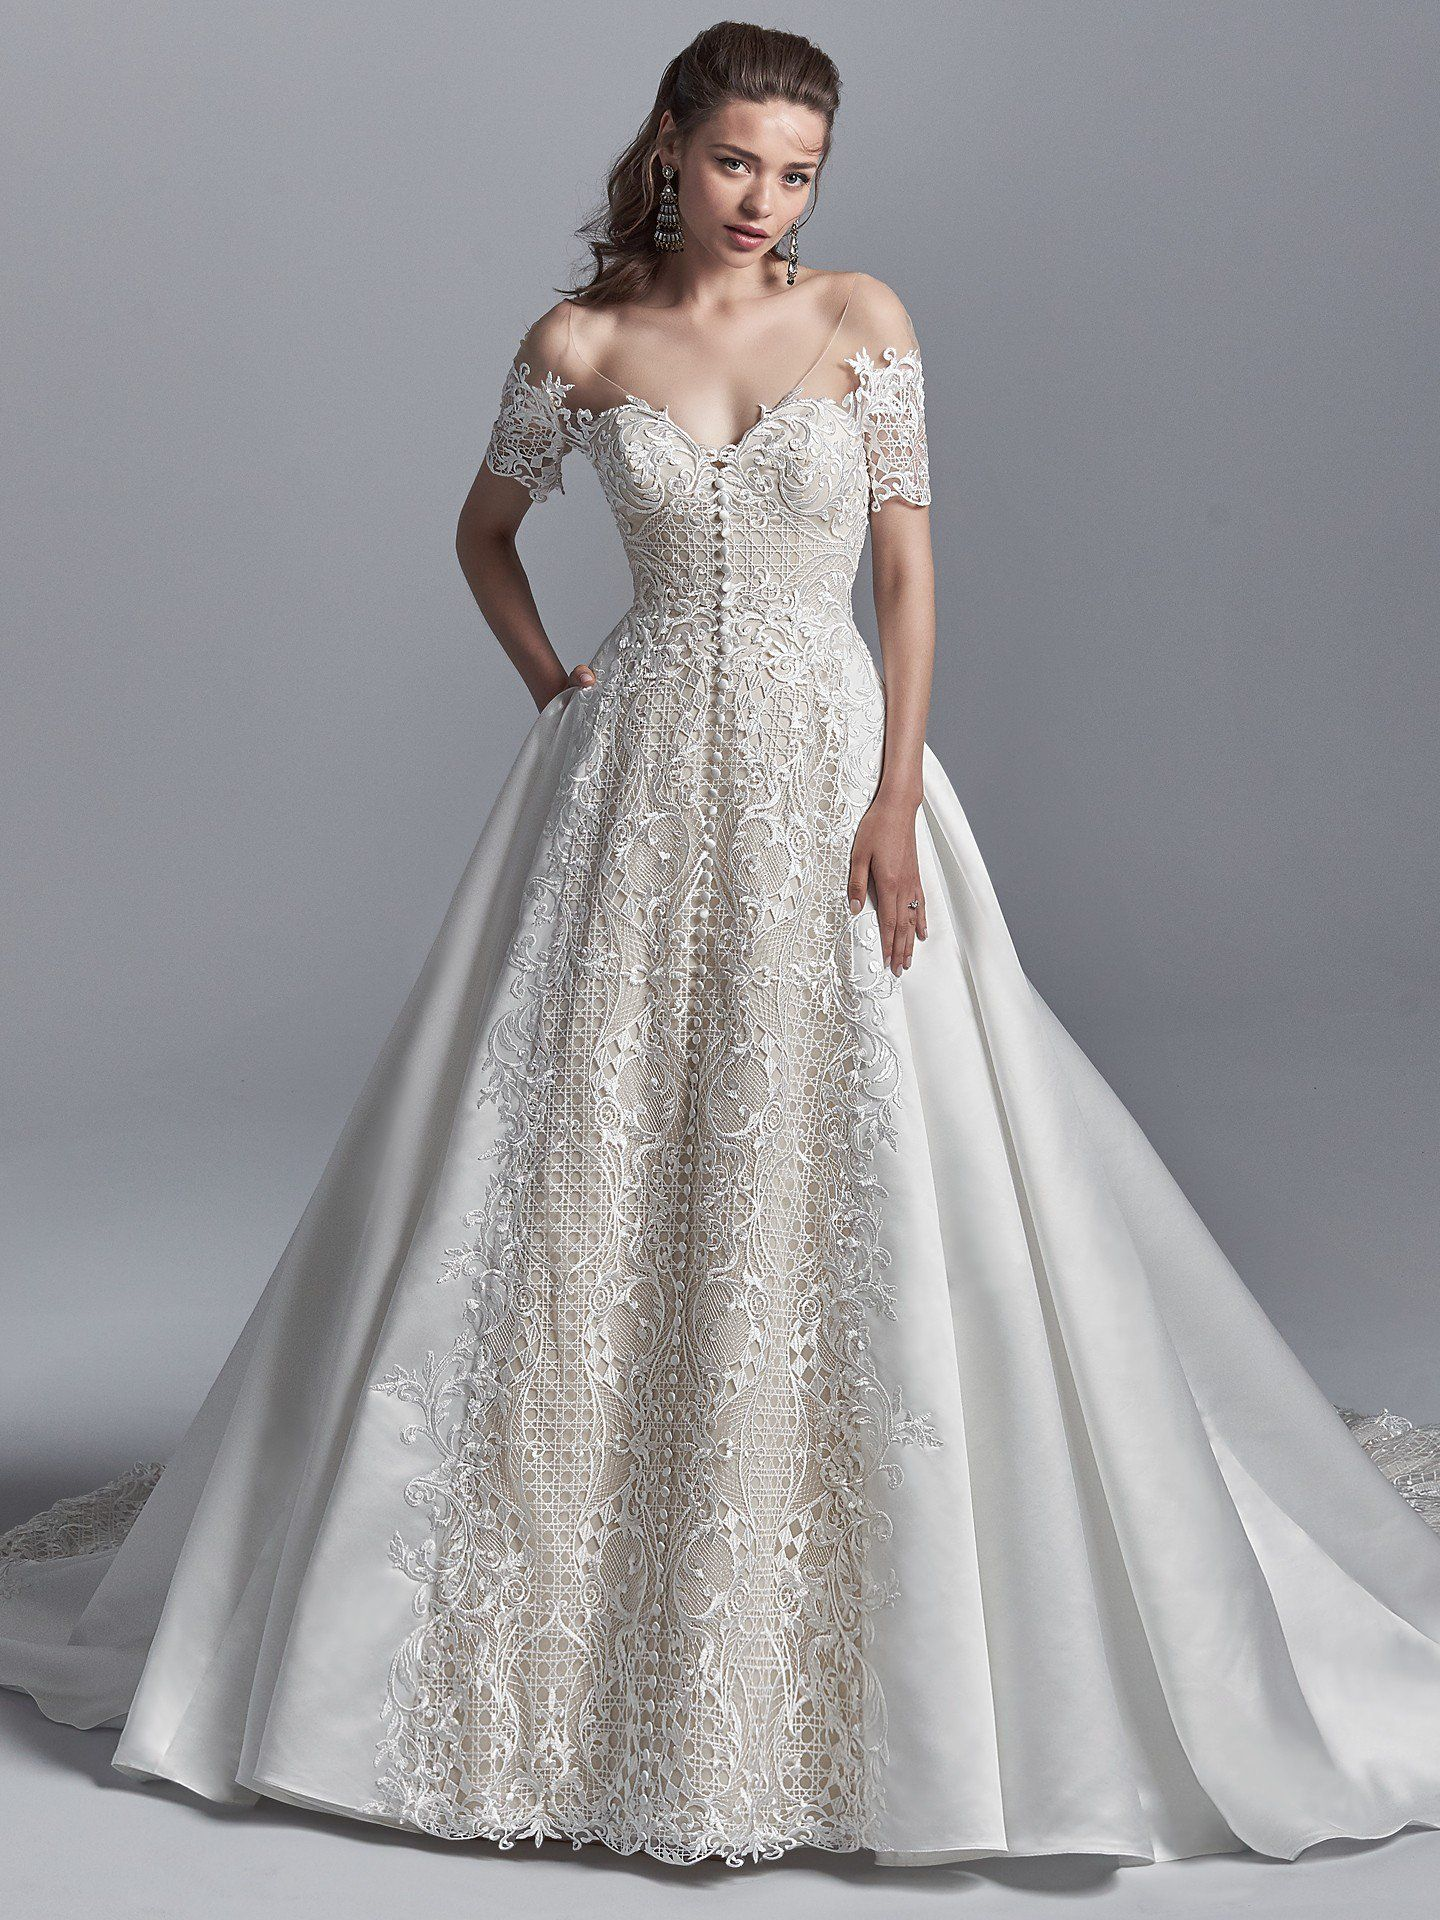 Maggie sottero wedding dresses princess wedding dresses shoulder